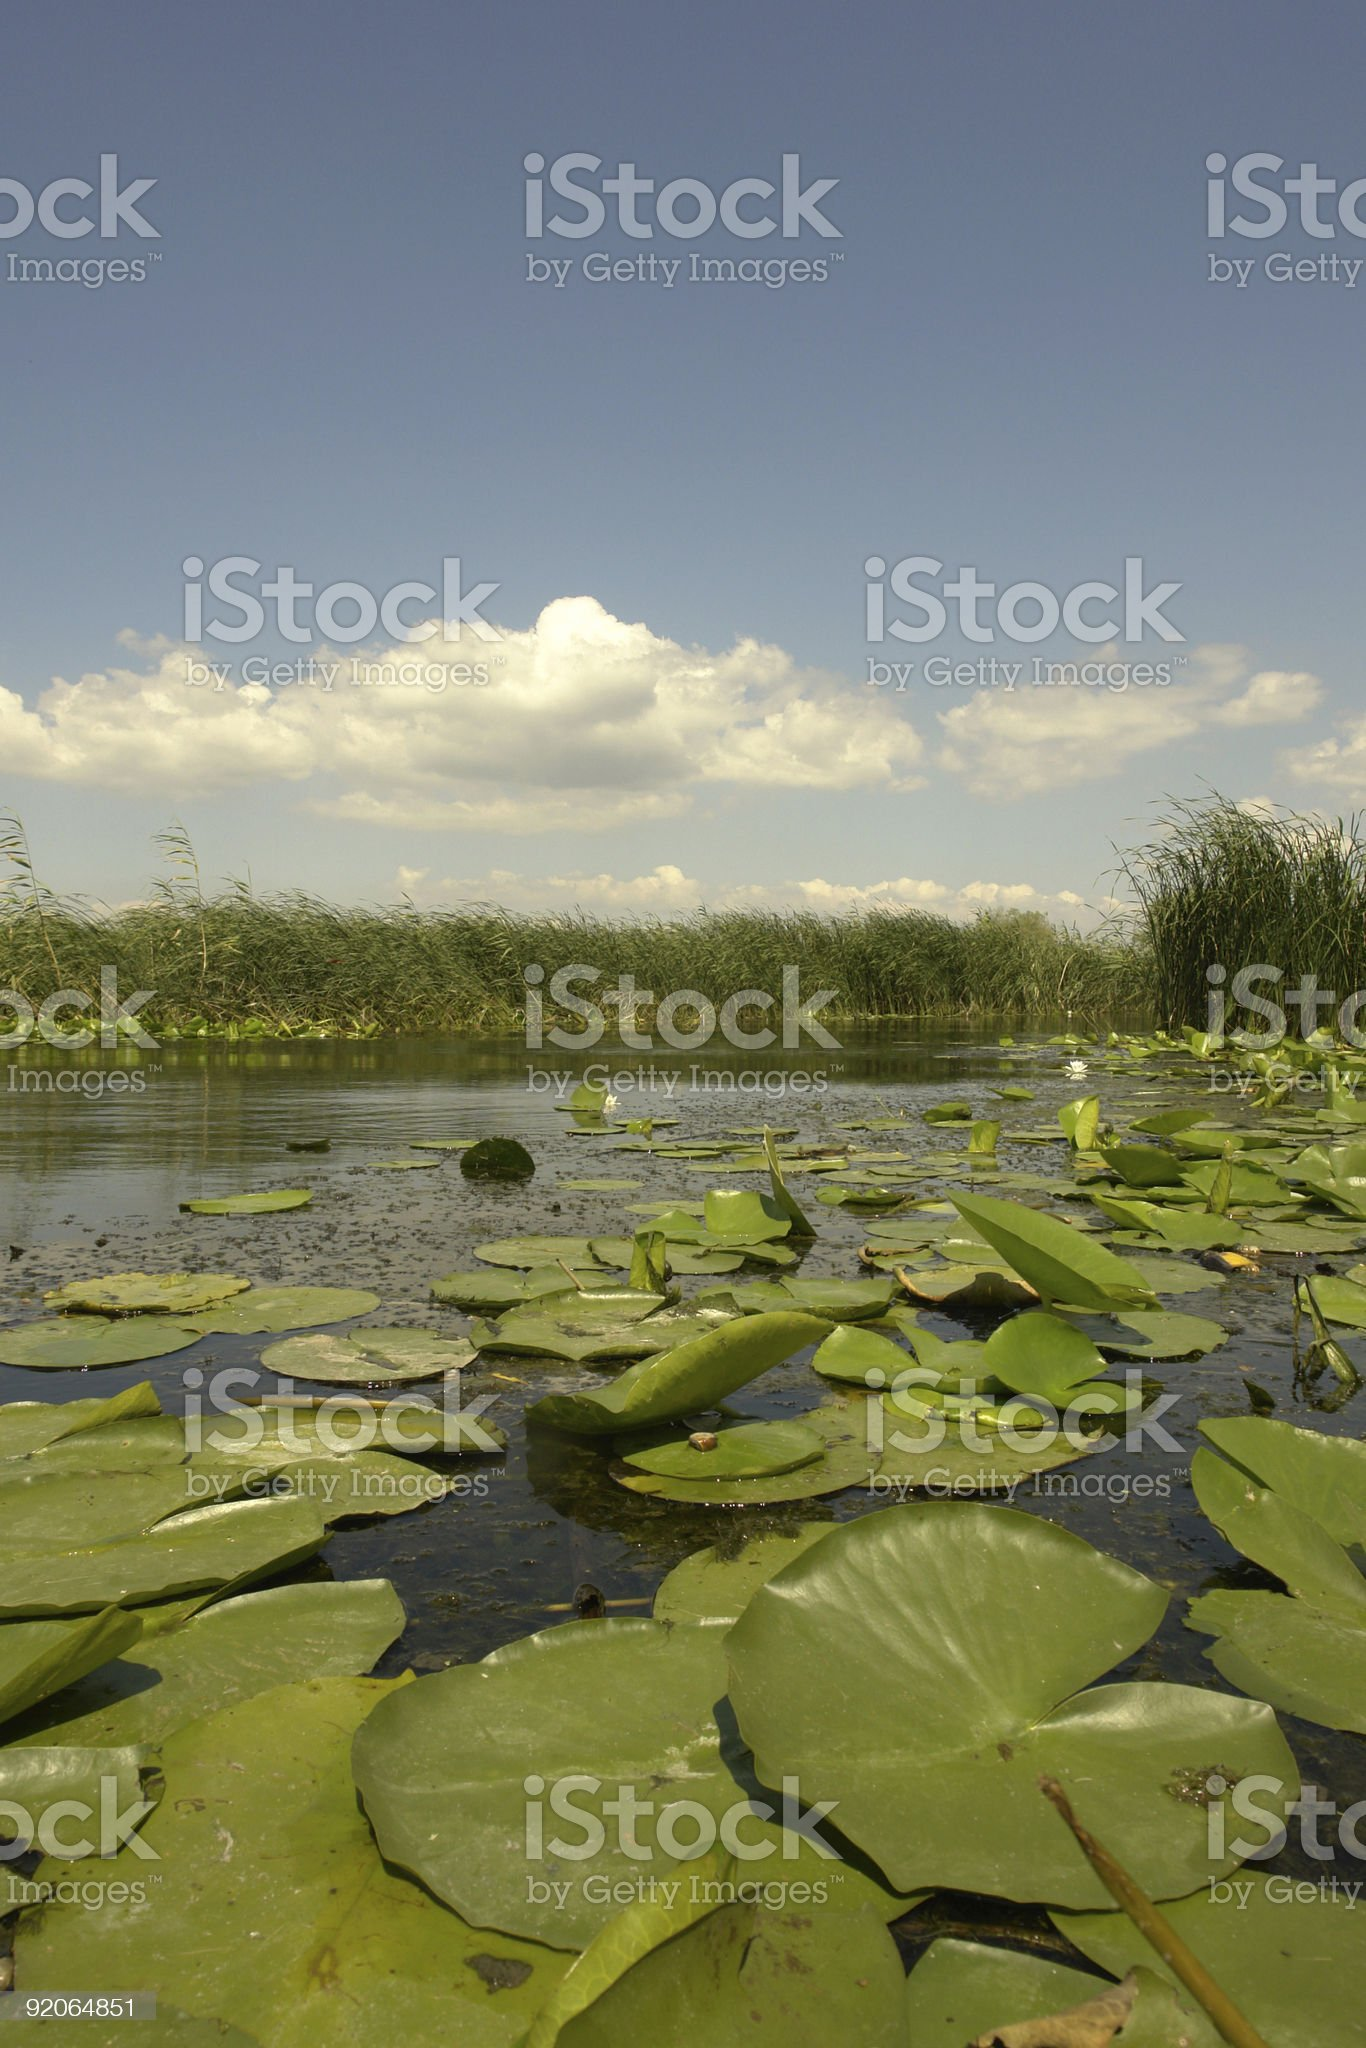 donaudelta lillyleafs royalty-free stock photo